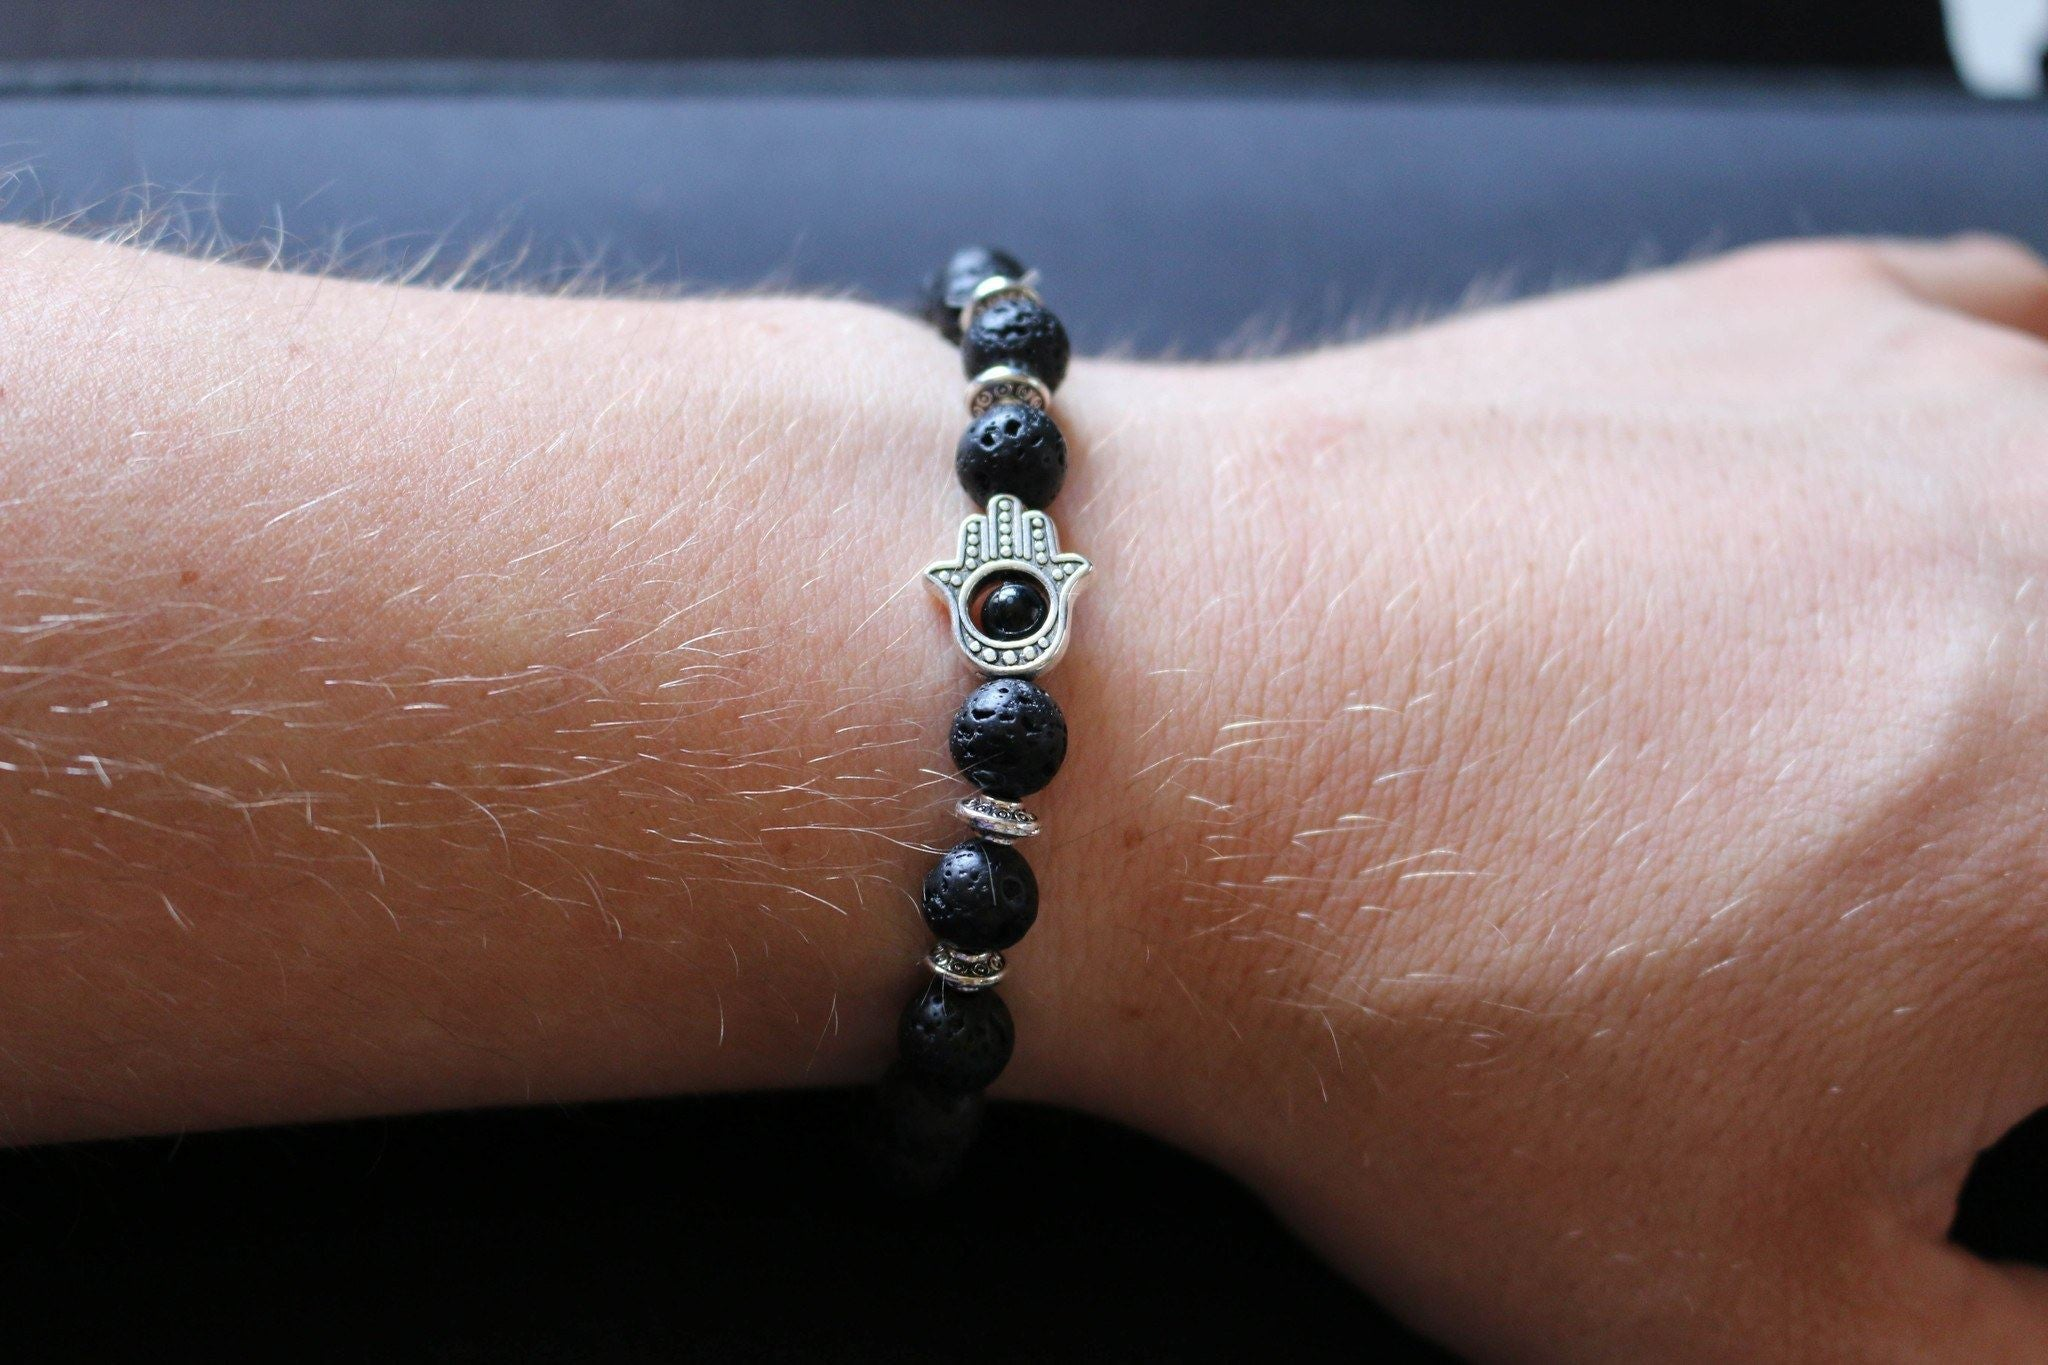 Lava Stone Bead Bracelet With Silver Hamsa Charm on wrist